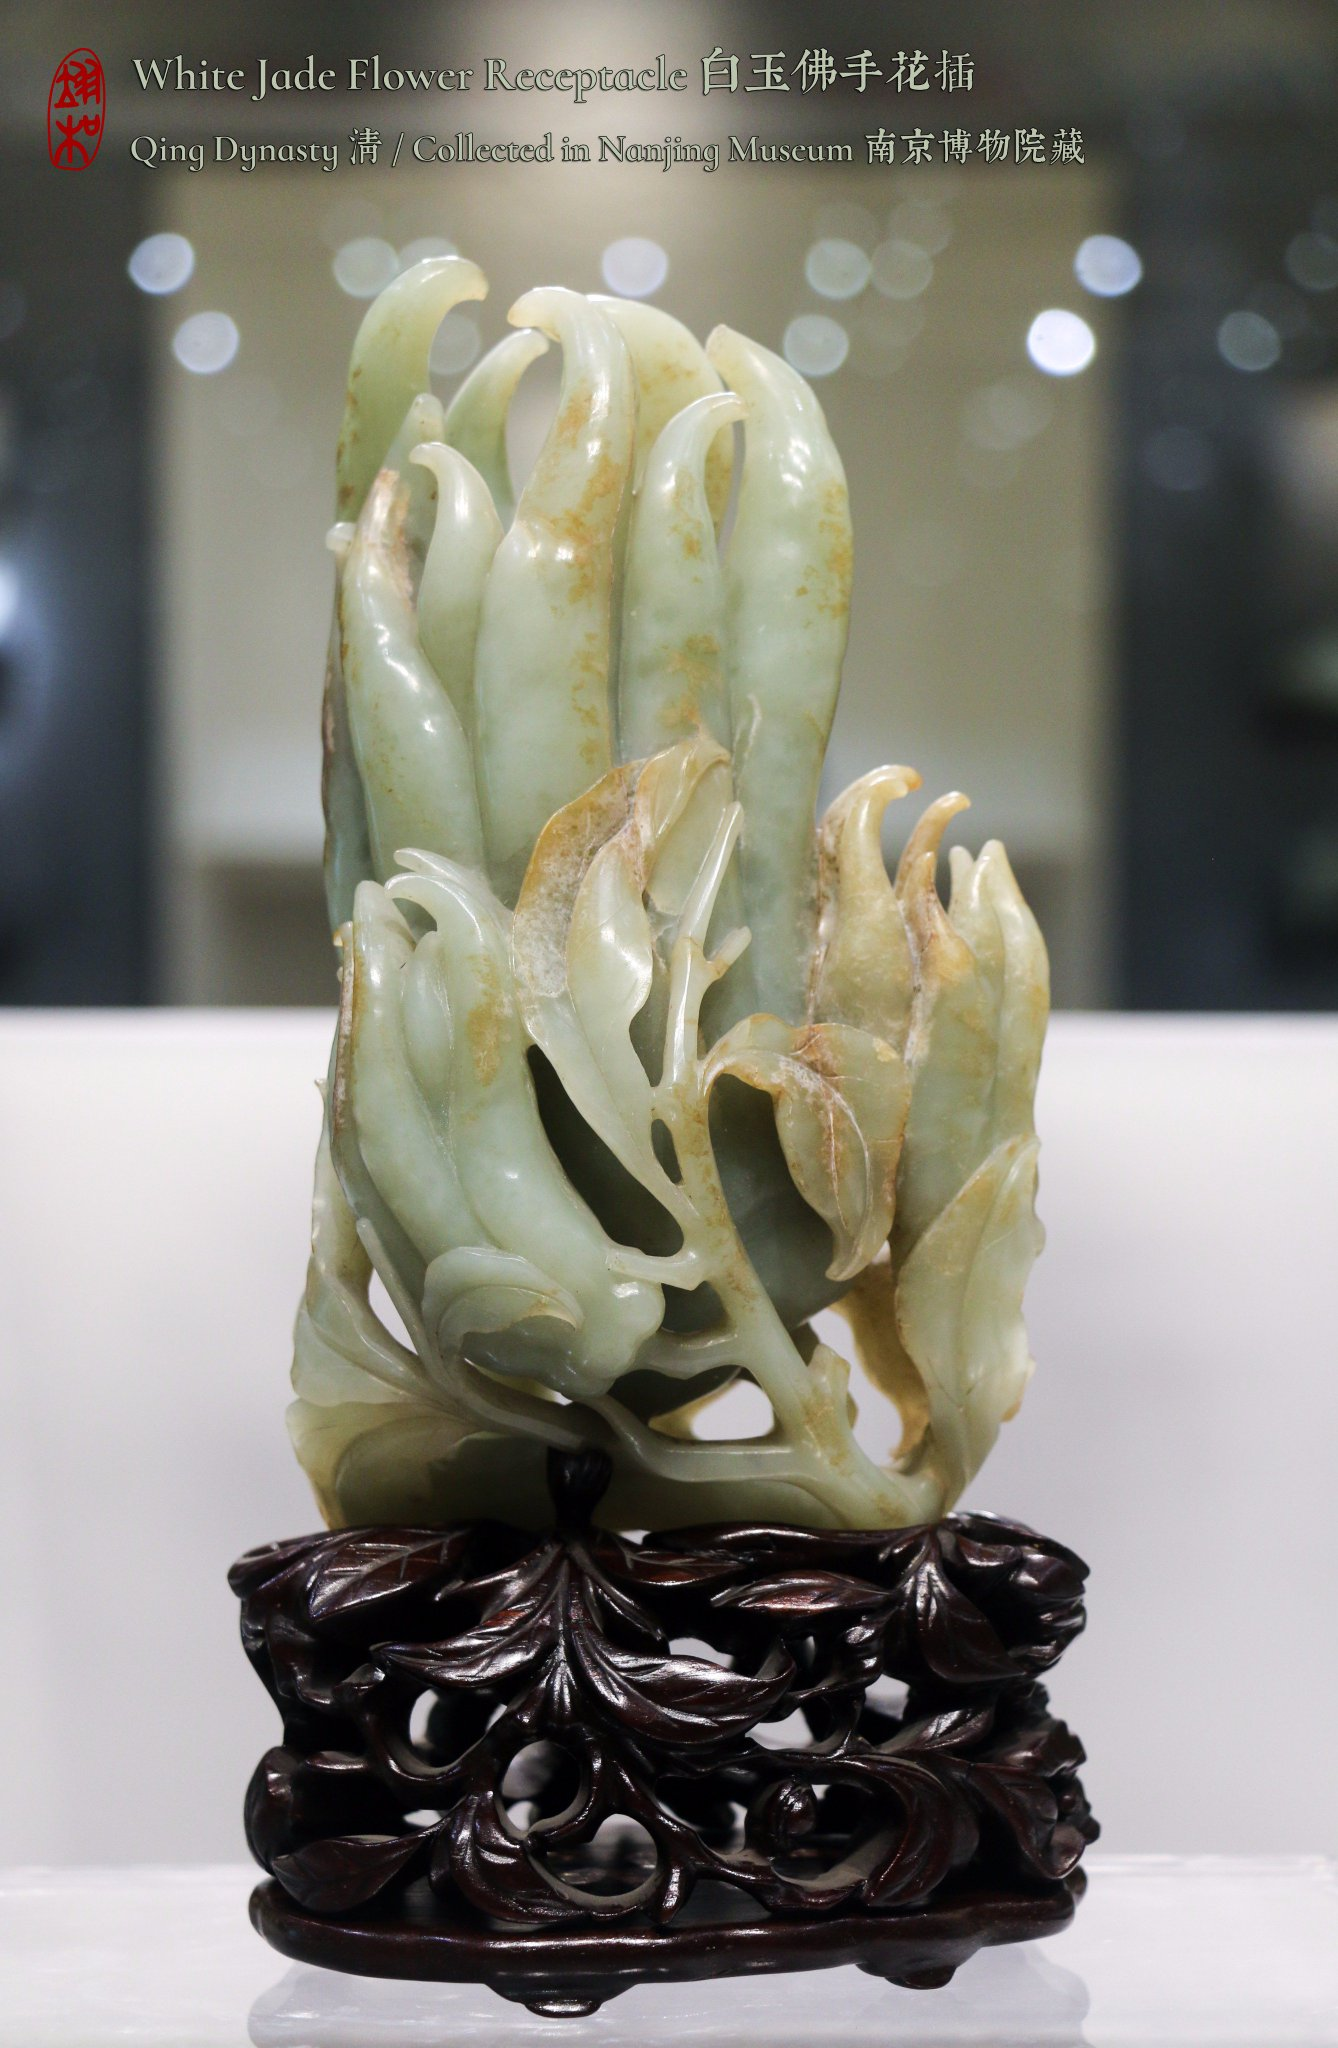 On Twitter White Jade Flower Receptacle Qing Dynasty1644